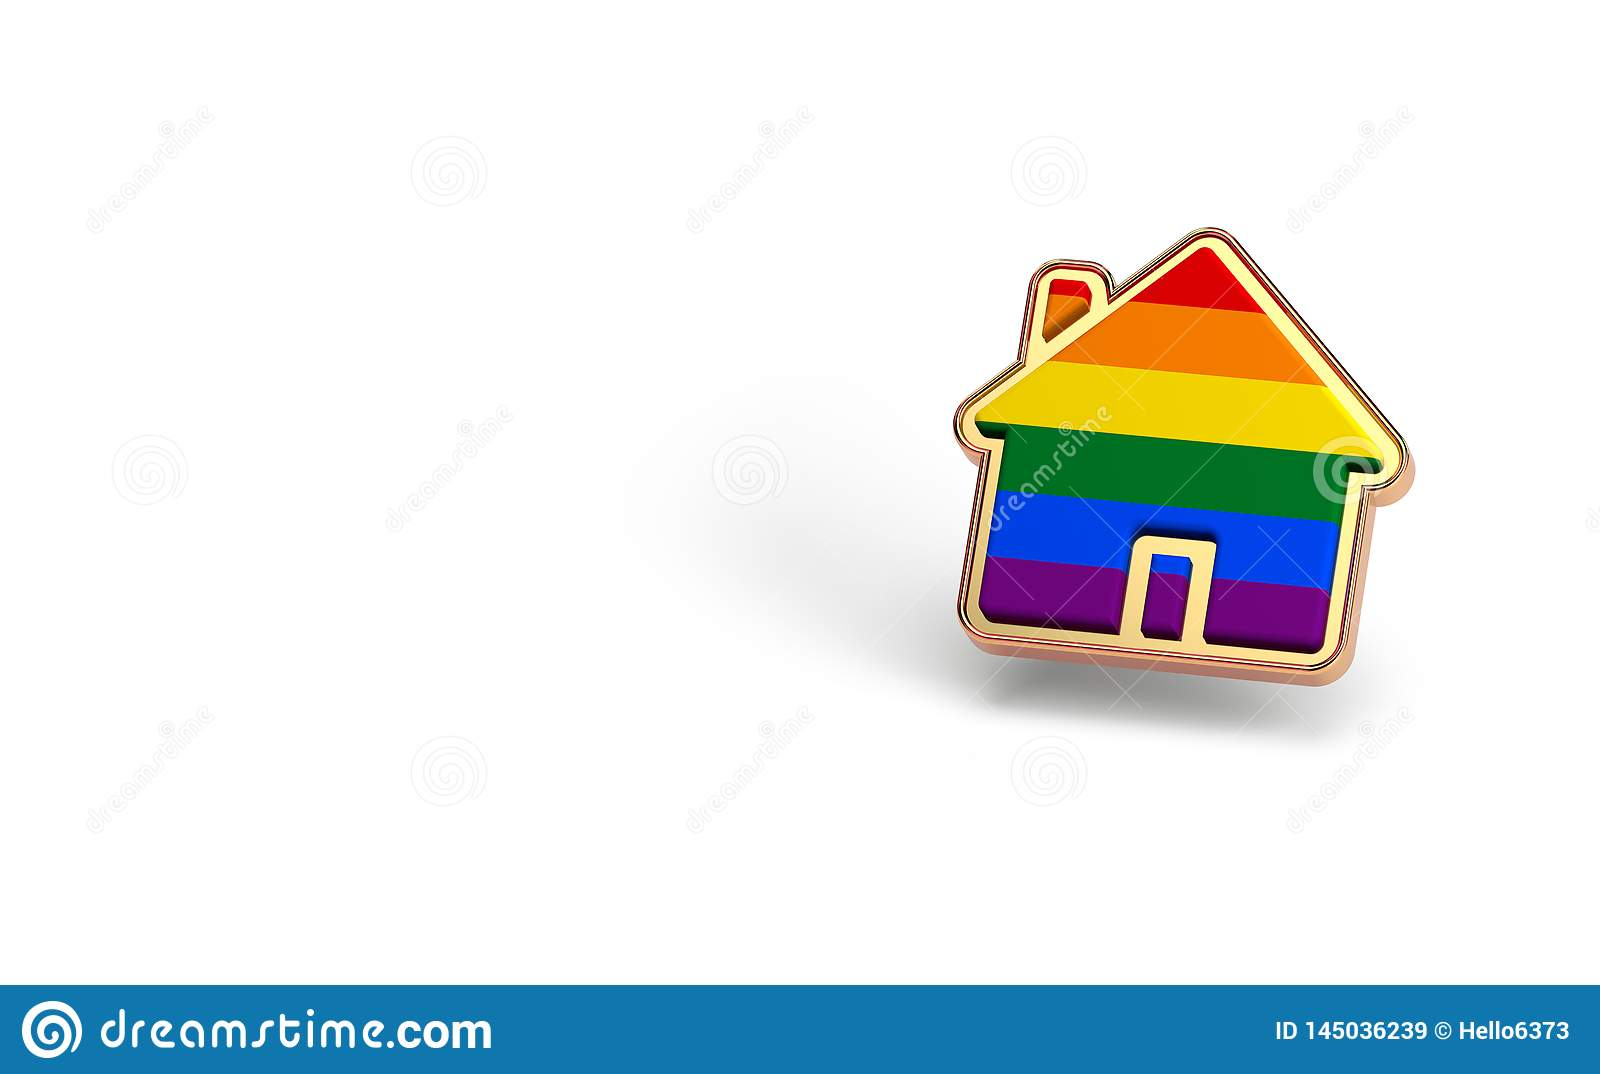 Gay pride rainbow in a home shape isolated on white background. Copy space on the left side. LGBTQ people rights to live together